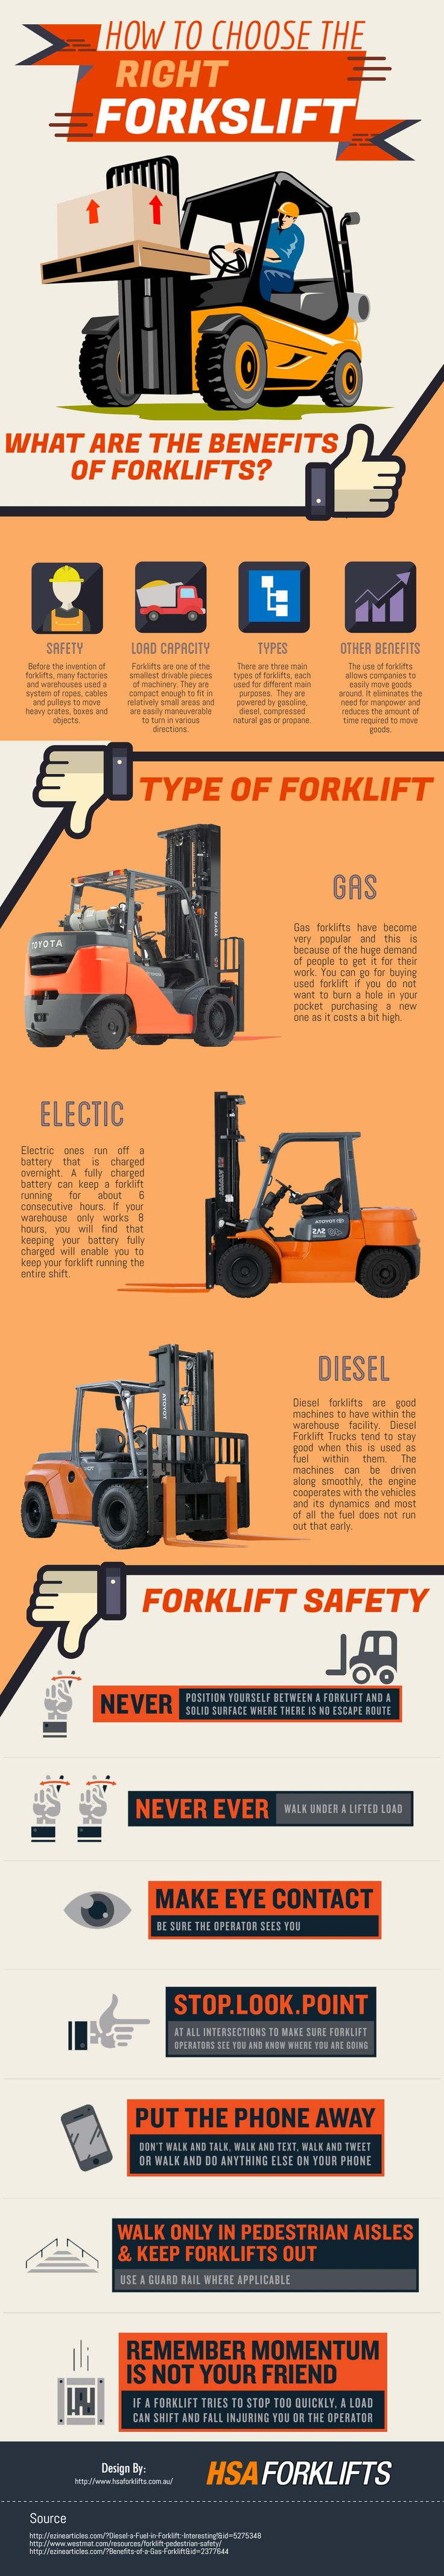 Select location type business with dock or forklift business without - Choosing The Right Forklift Is Important For Your Business It Affects Everything From Operation Costs